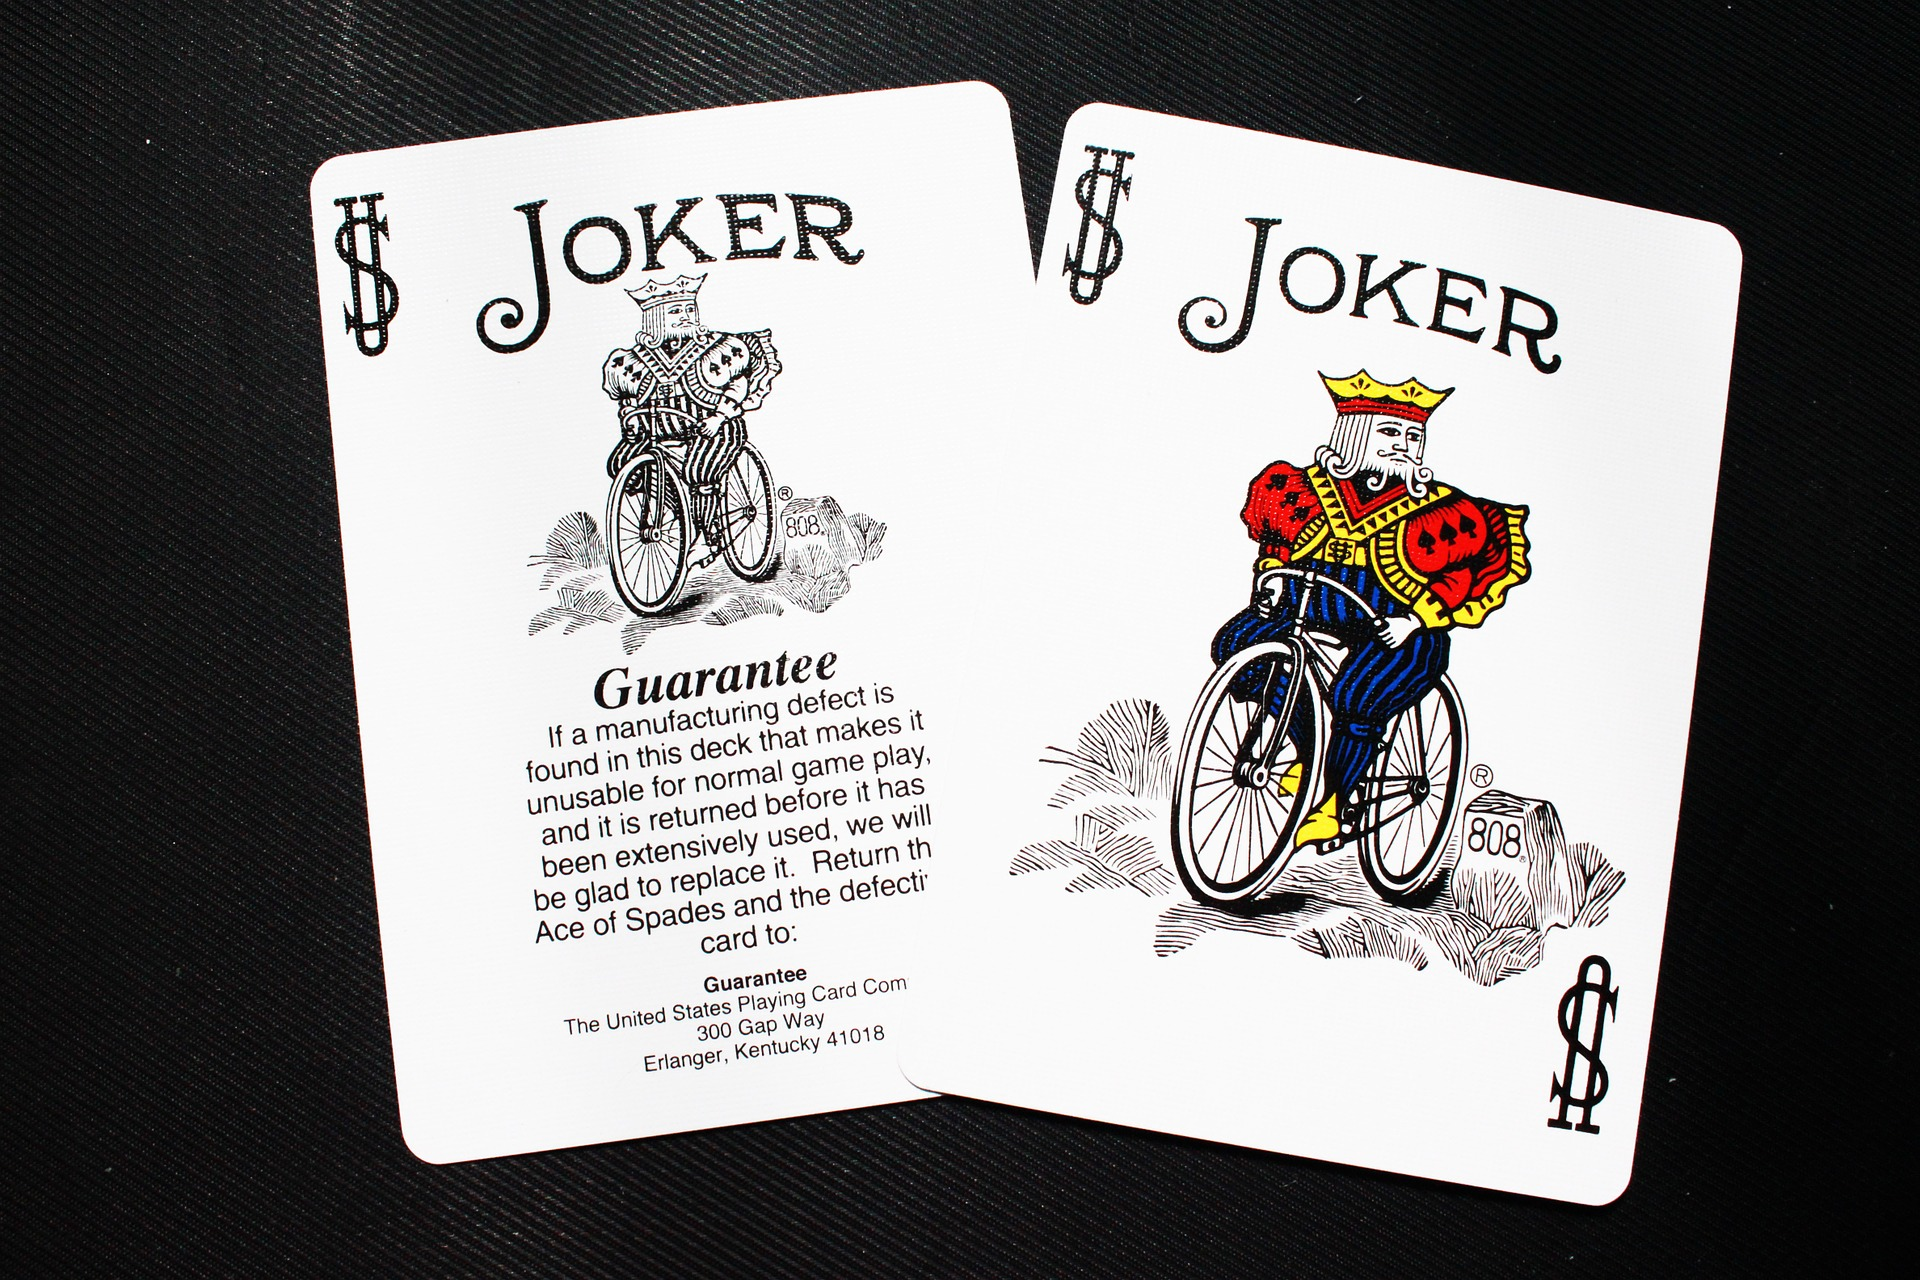 Two joker cards